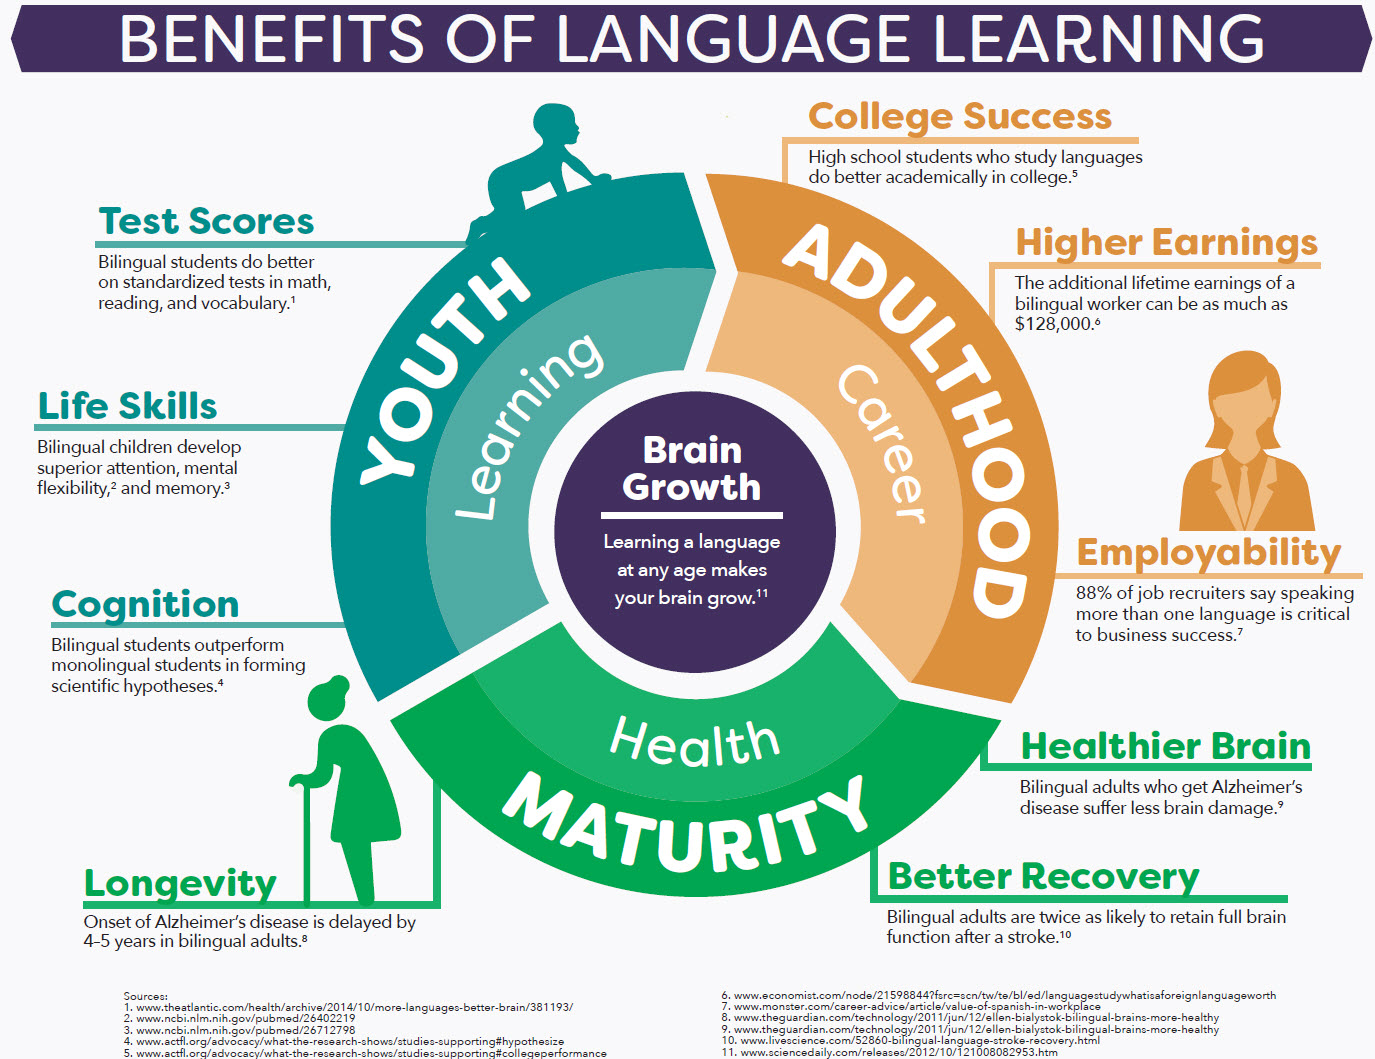 MLA Benefits of Language Learning